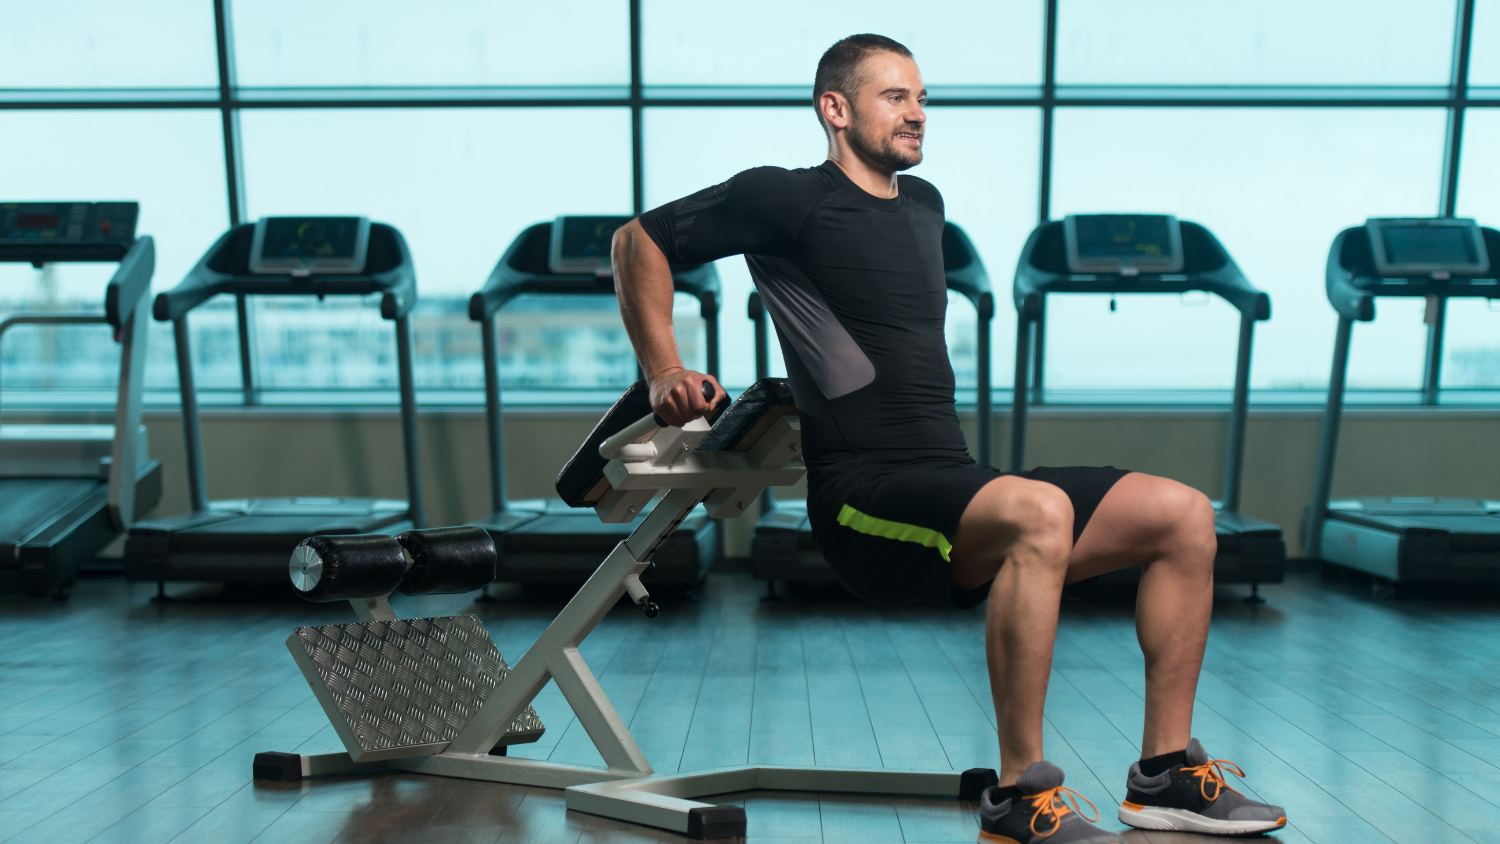 World's Best Roman Chair & Vertical Knee Raise Machine Exercises